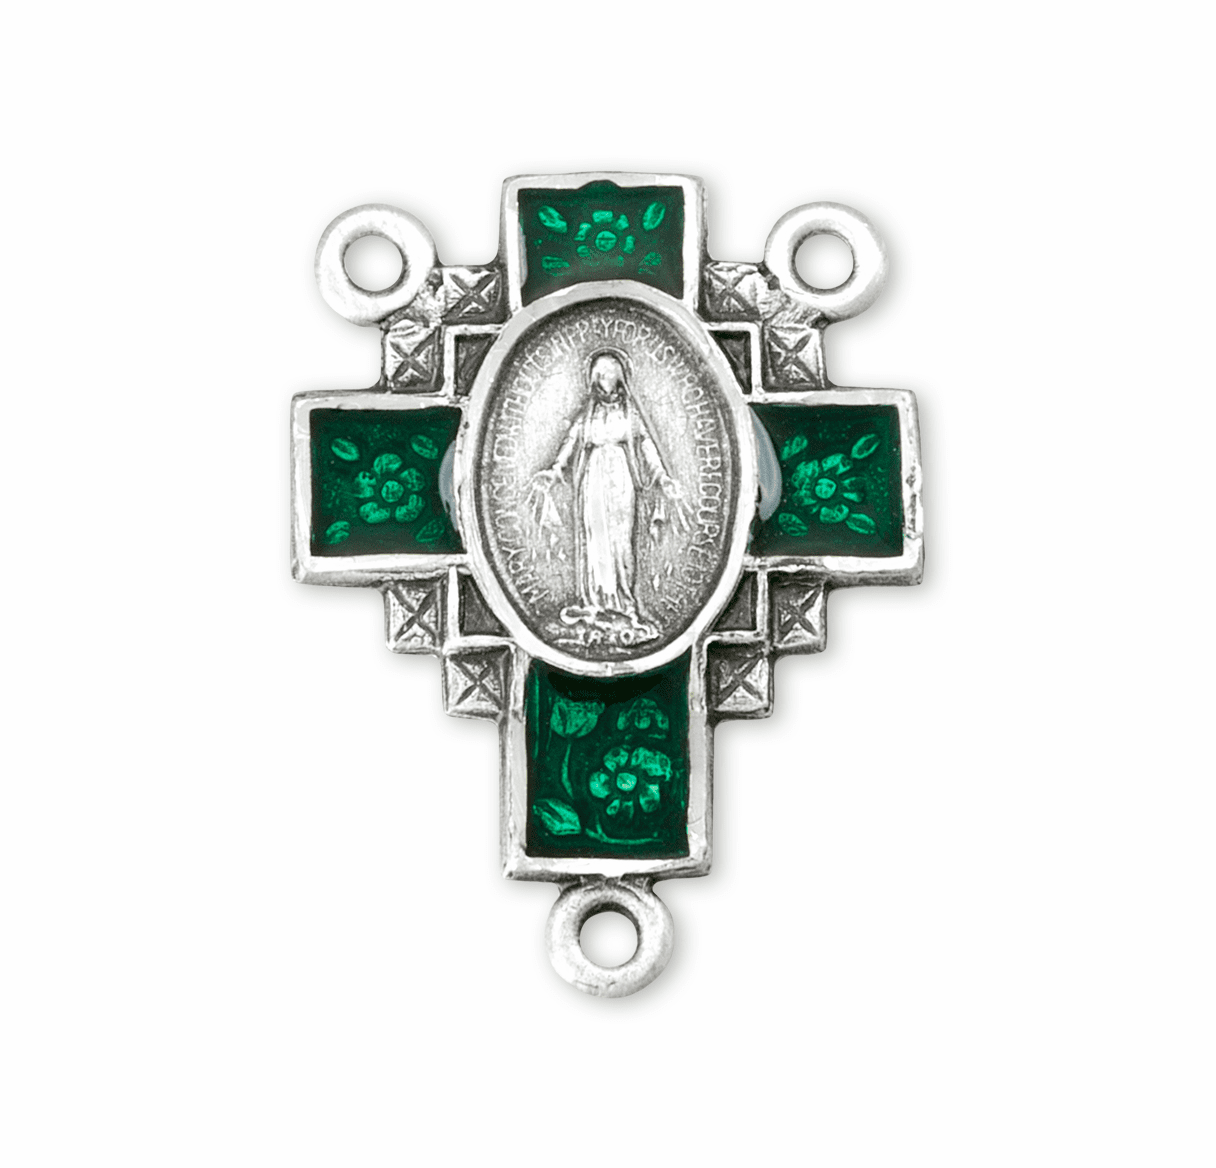 Green Cross Miraculous Medal Sterling Silver Centerpiece Rosary Part by HMH Religious